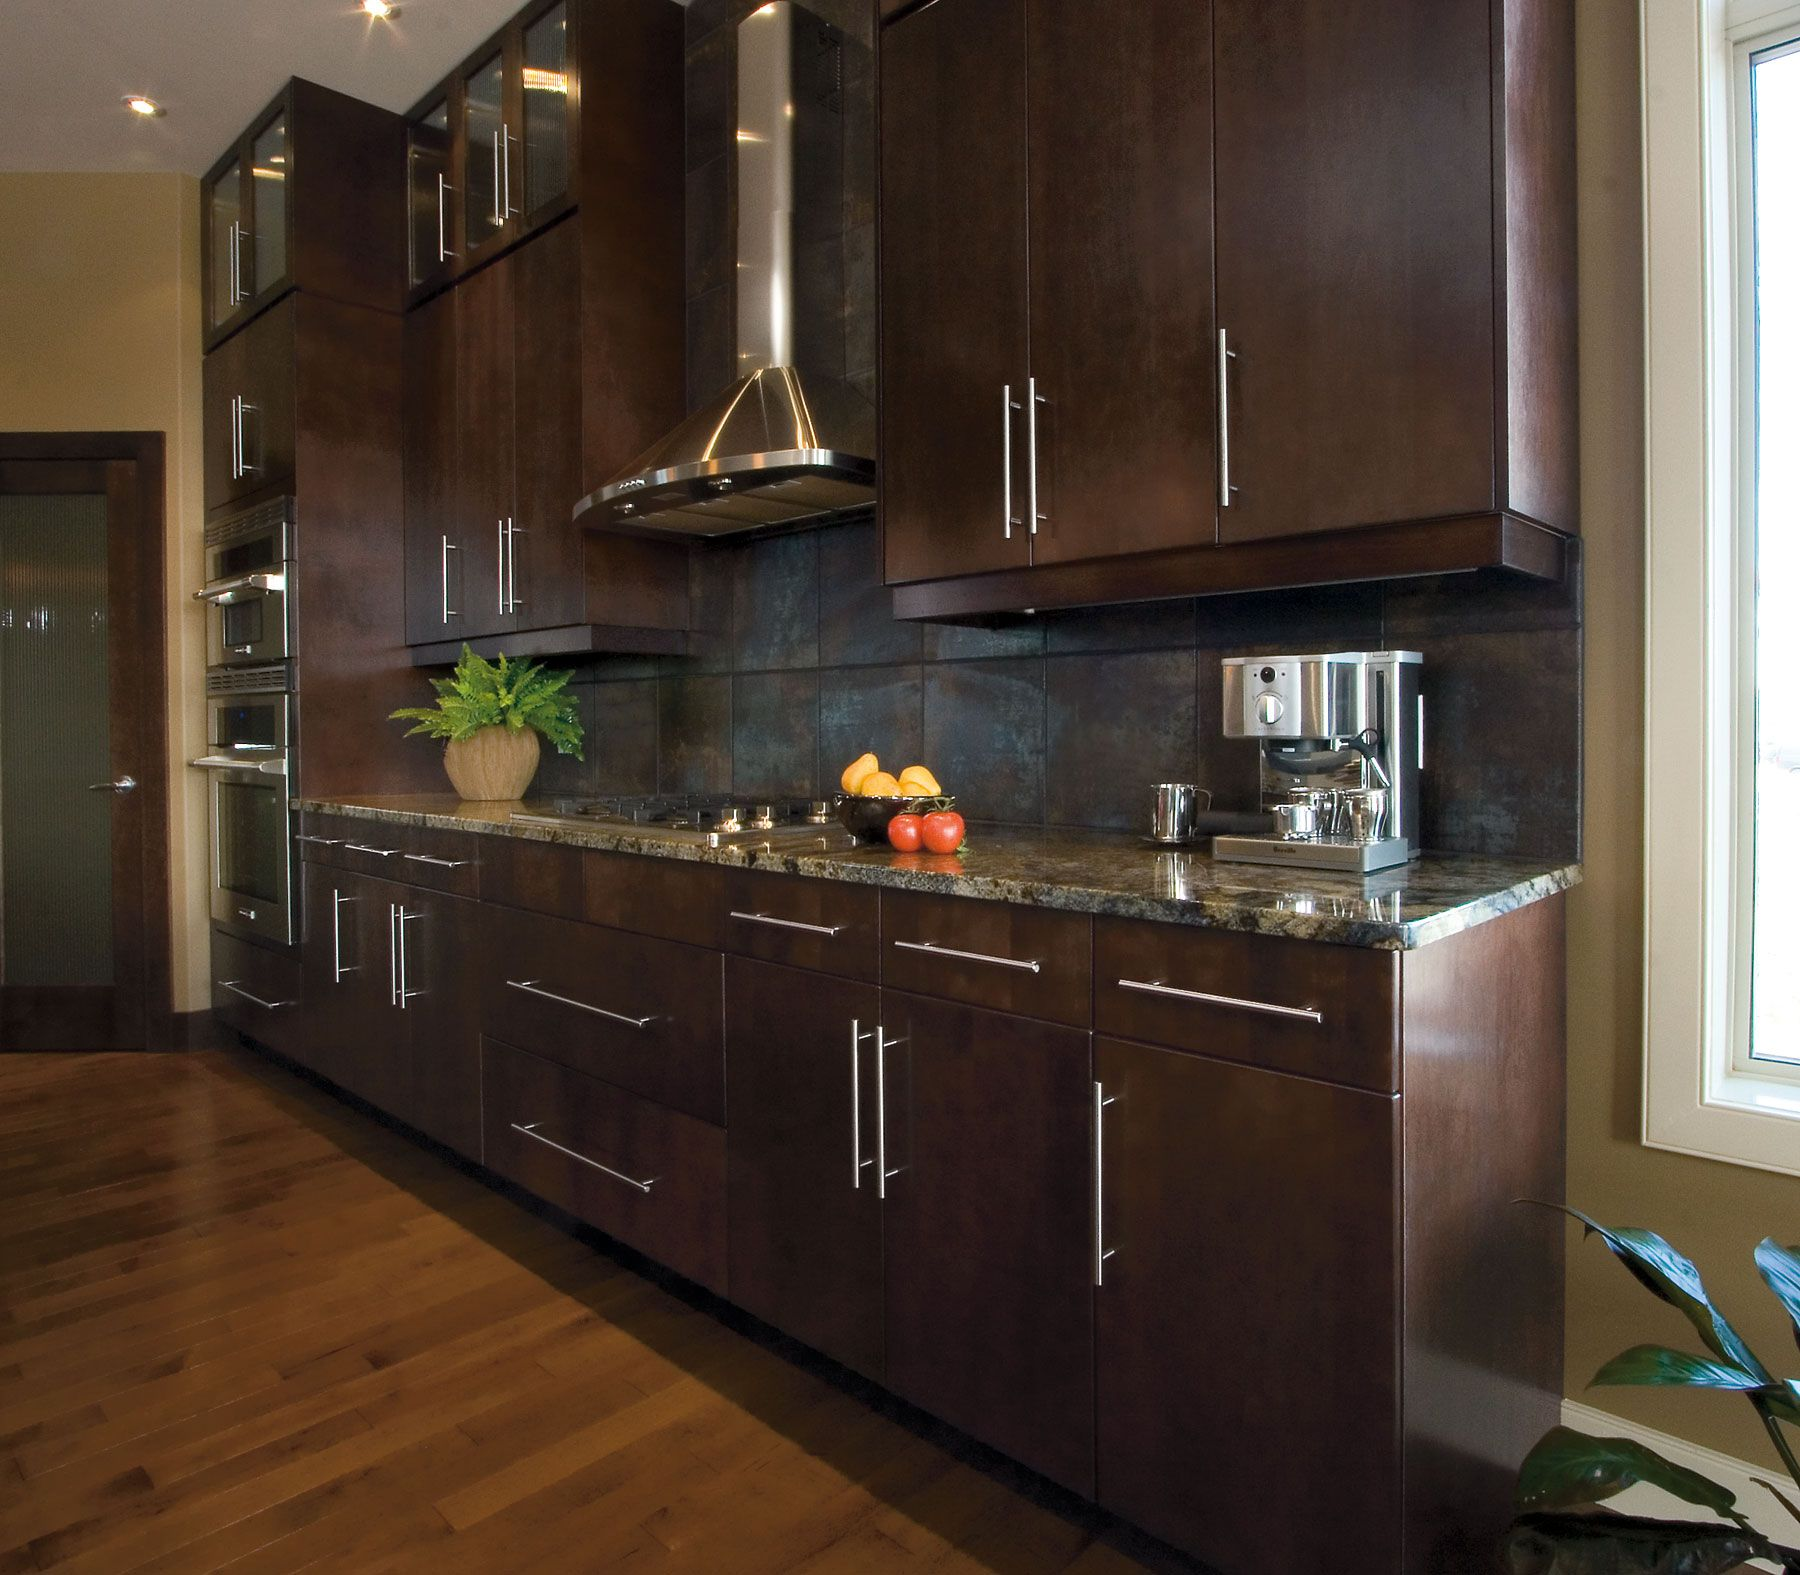 Kitchen Craft Creates A Rich, Luxurious Look With Their Espresso Finish On  Summit Maple Doors